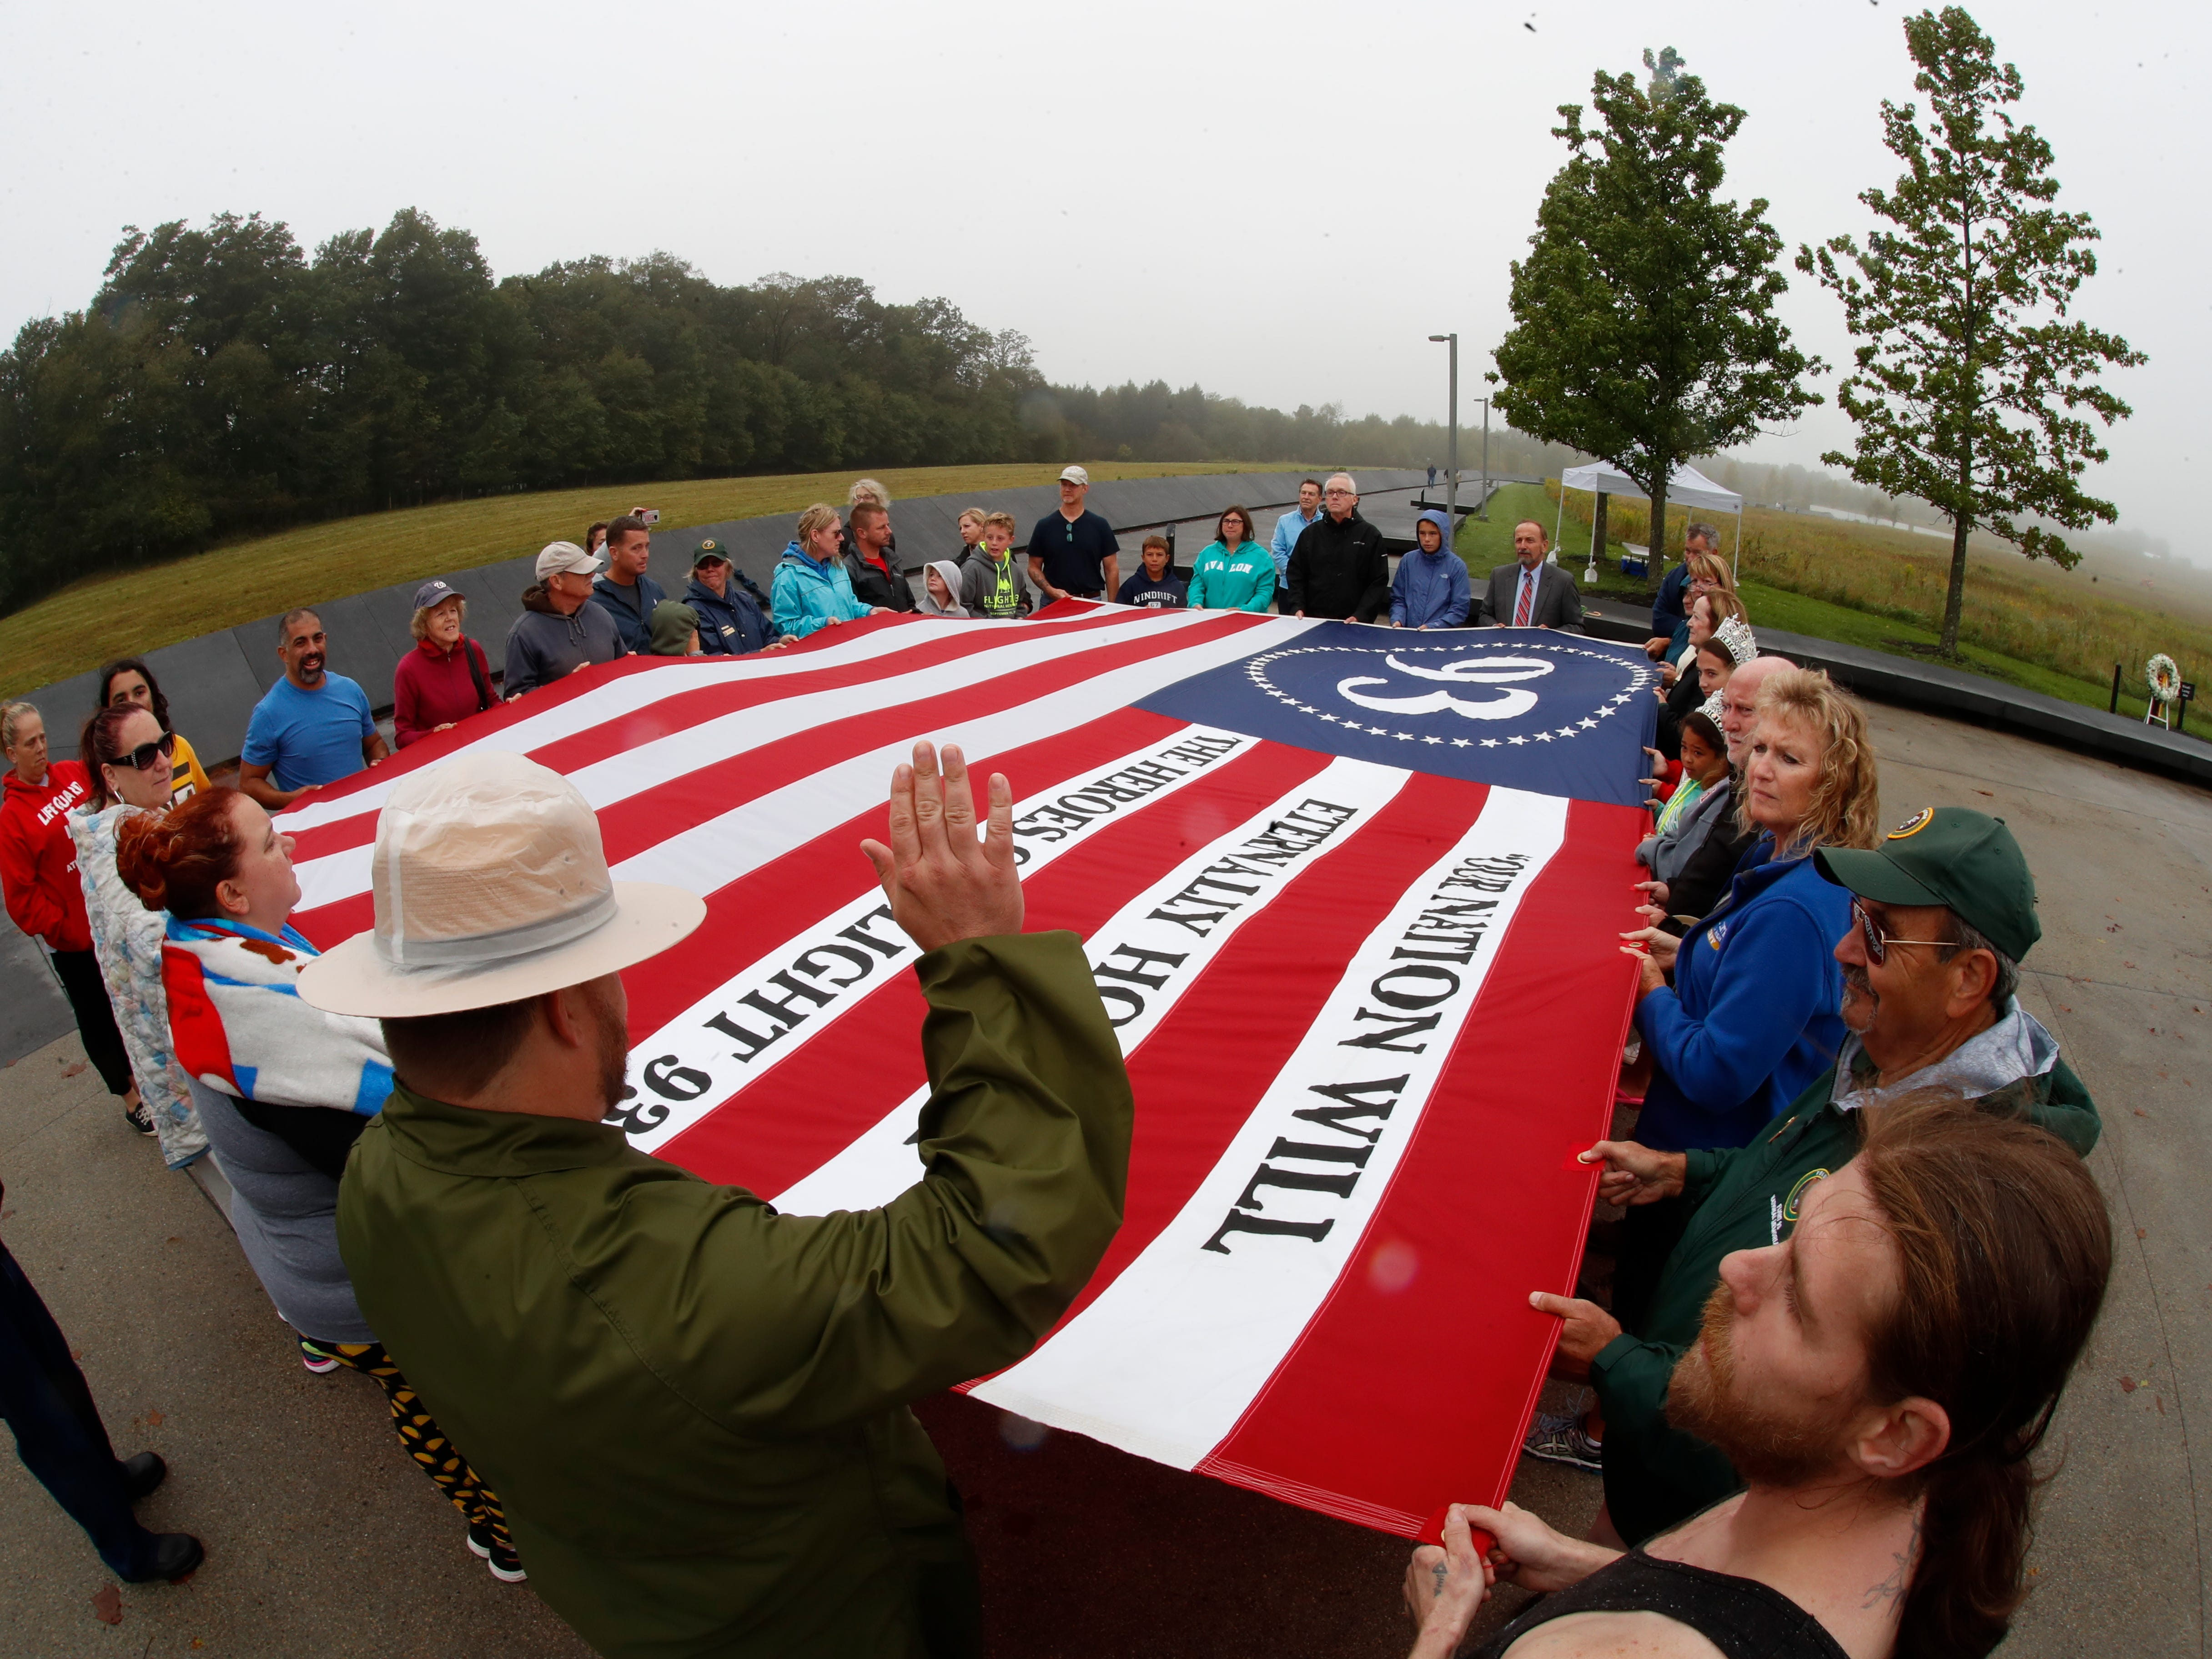 Visitors to the Flight 93 National Memorial in Shanksville, Pa., participate in a sunset memorial service on Monday, Sept. 10, 2018, as the nation marks the 17th anniversary of the Sept. 11, 2001 attacks. (AP Photo/Gene J. Puskar) ORG XMIT: PAGP105